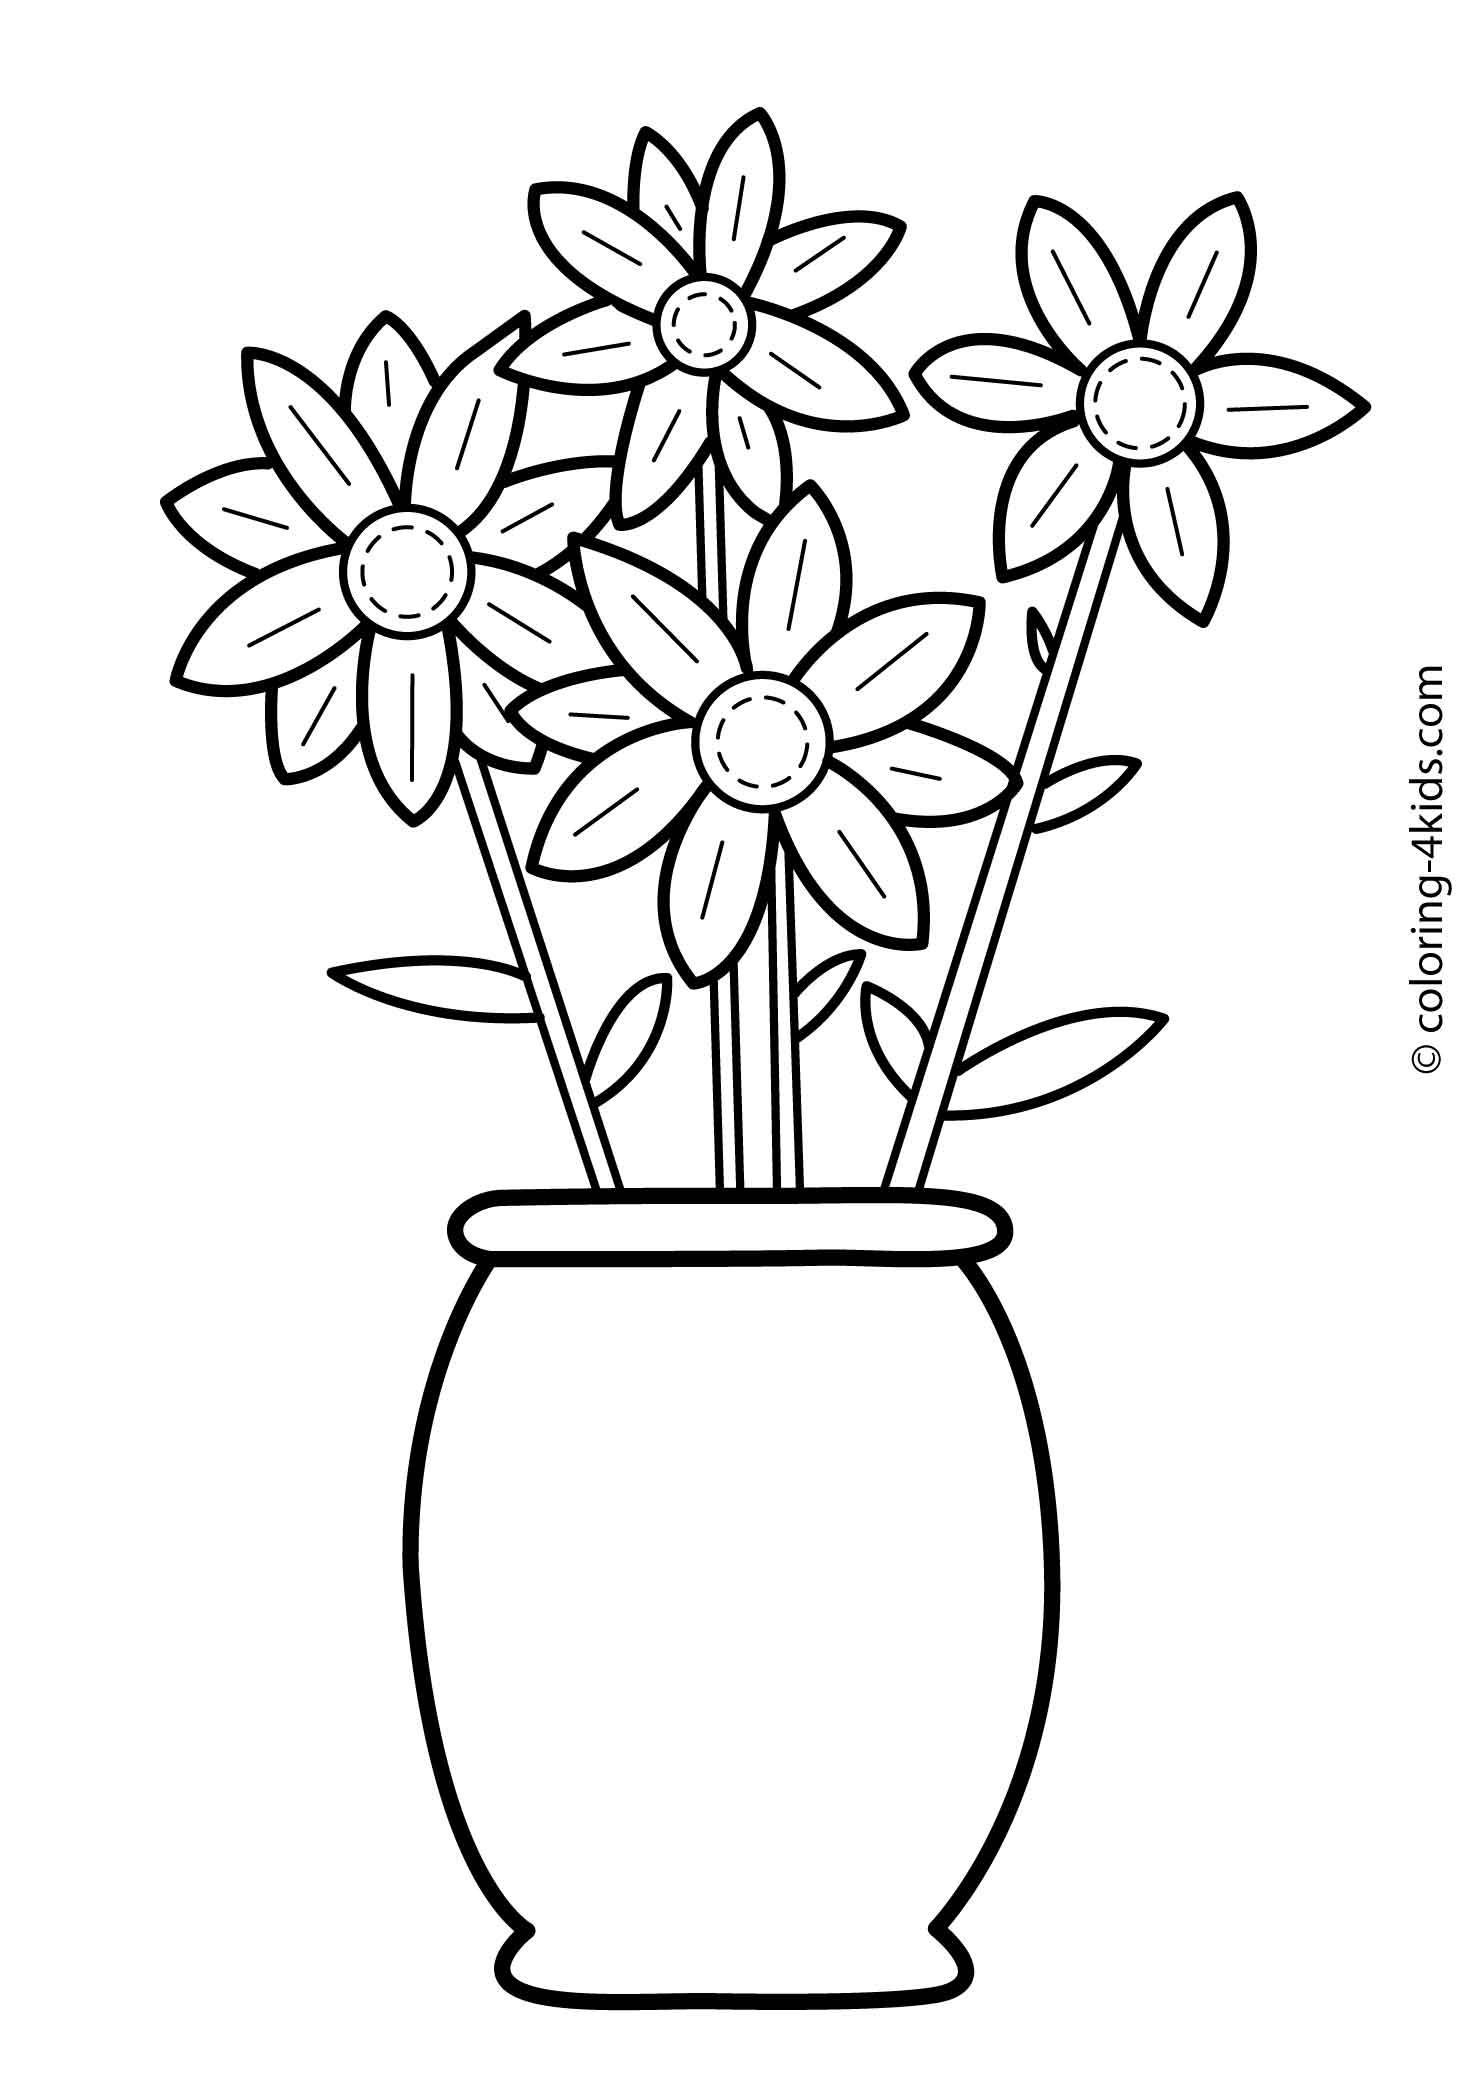 Flowers Coloring Pages For Kids Printable 6 With Images